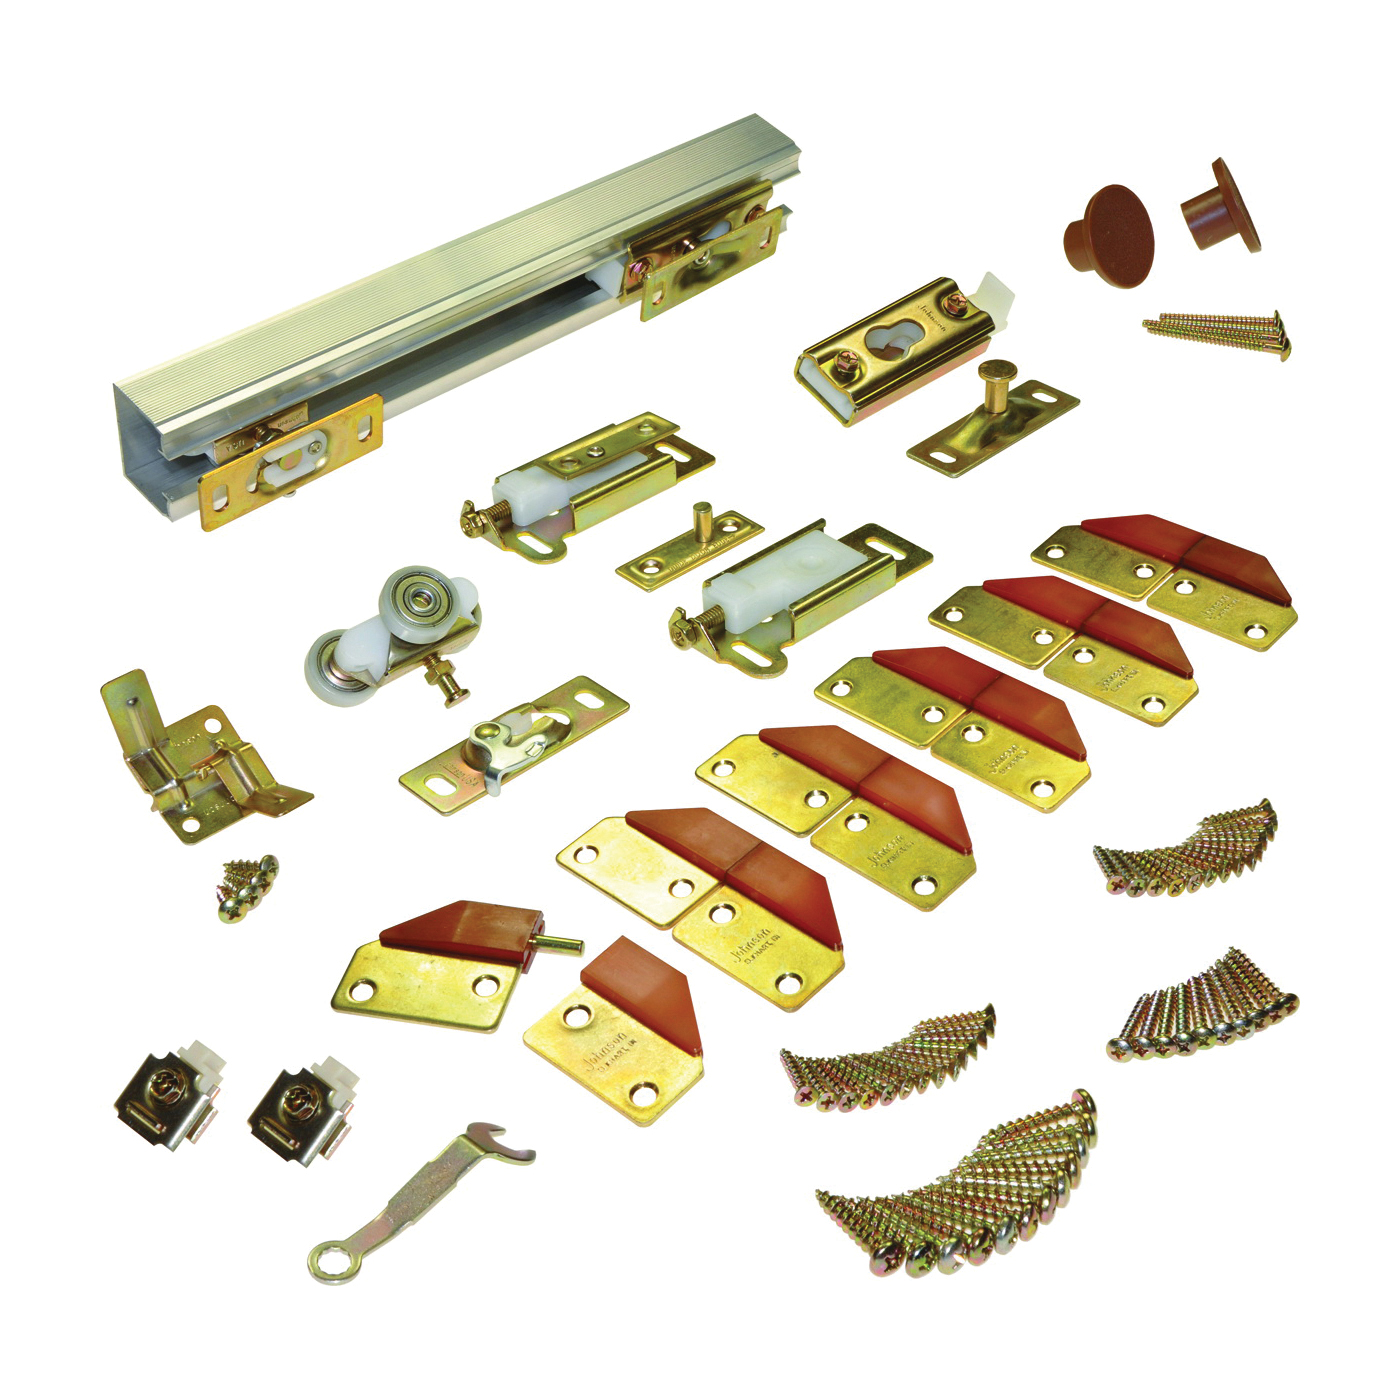 Picture of Johnson Hardware 100FD724 Panel Hardware Set, 1-1/8 to 1-3/4 in Thick Door, Top Mounting, For: 75 lb Bi-Fold Door